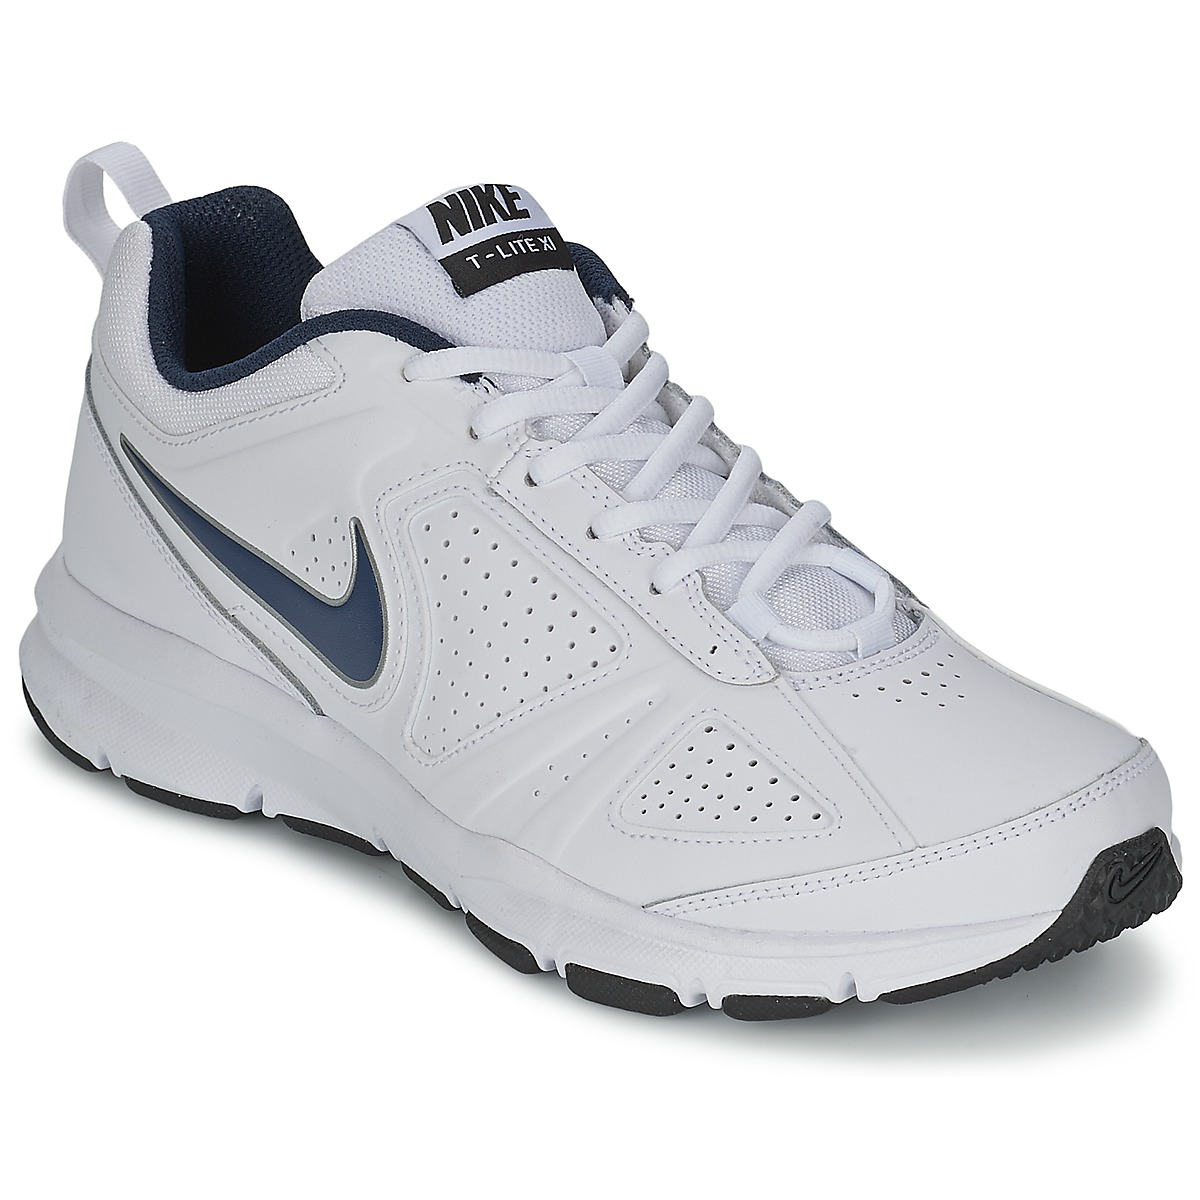 Shoes Nike Leather Black T Lite